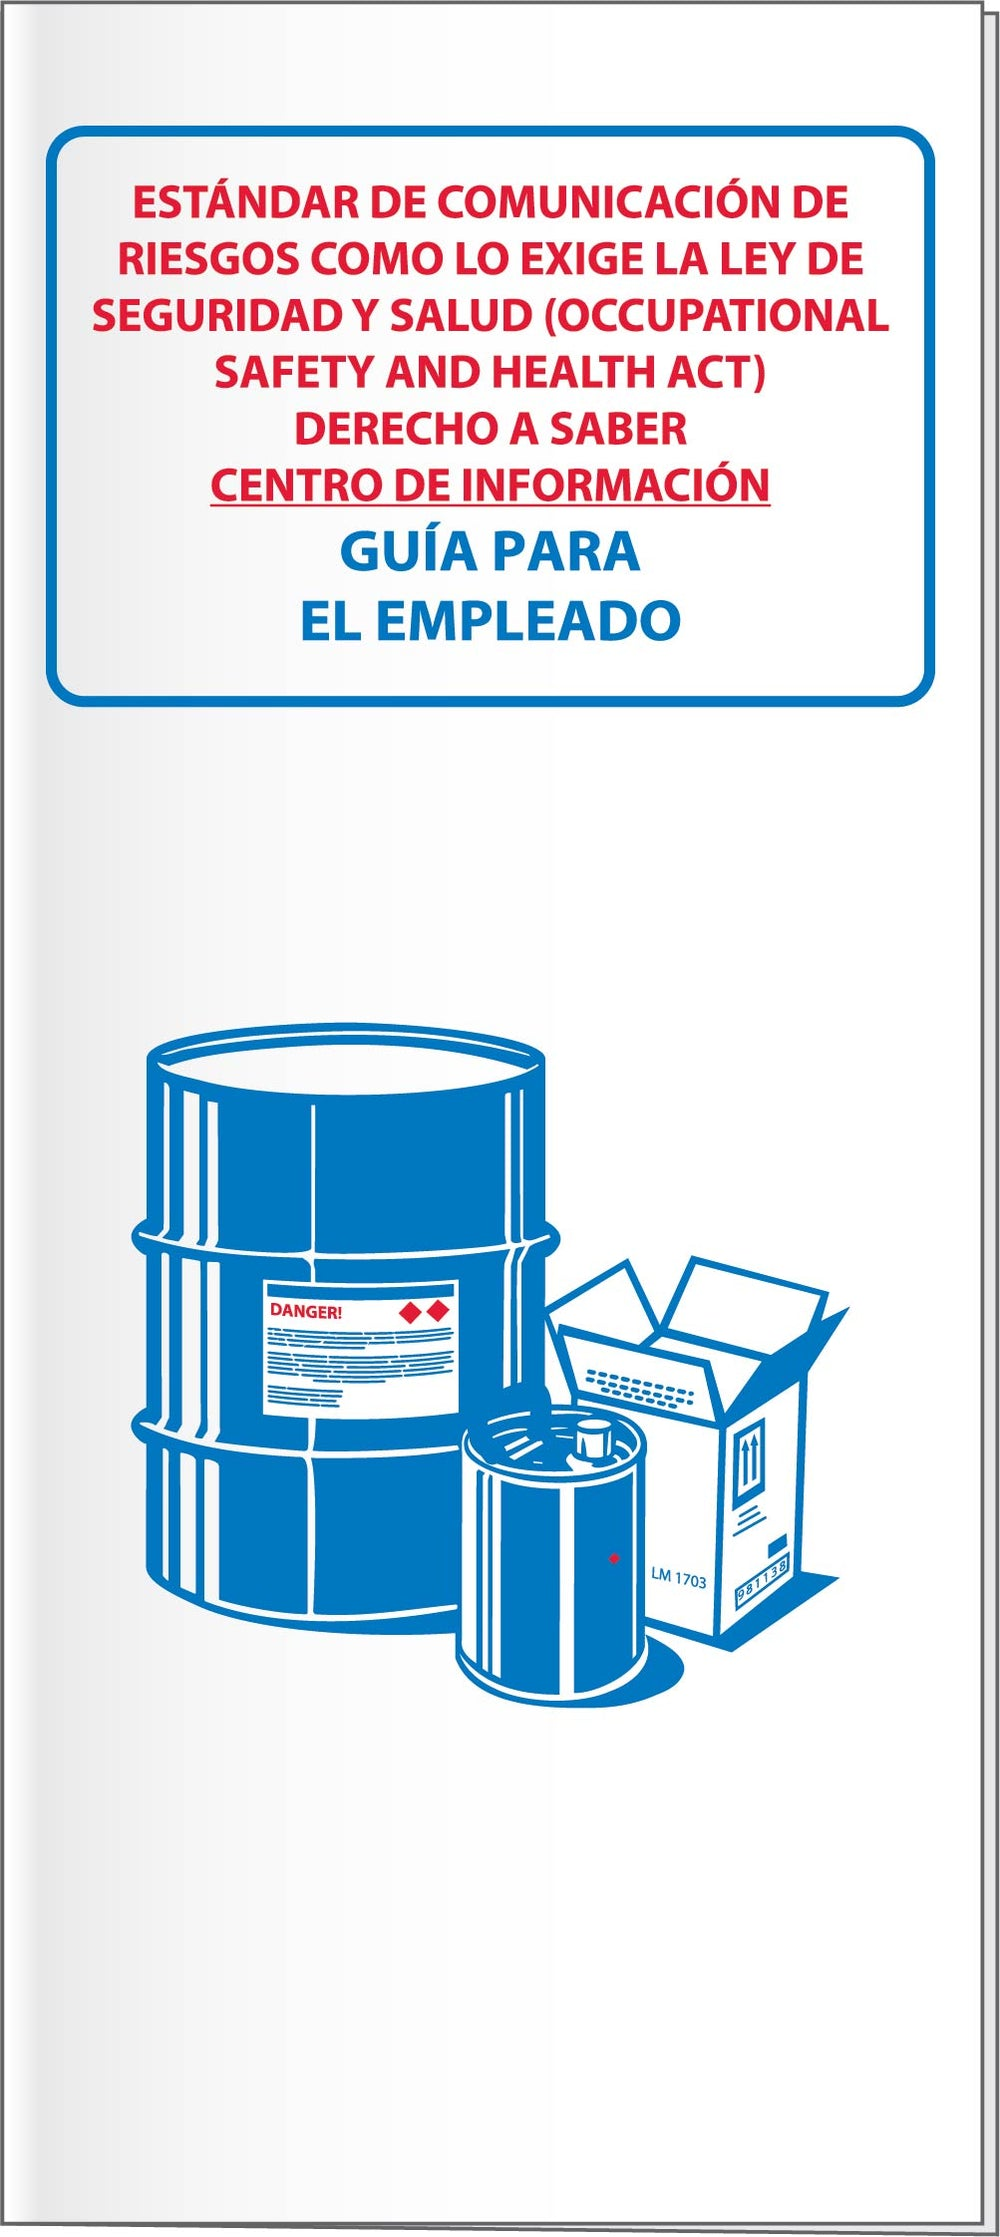 HAZCOM/GHS/RTK BOOKLETS/MANUALS, W/ CARD INSERT, 10/PK - SPANISH